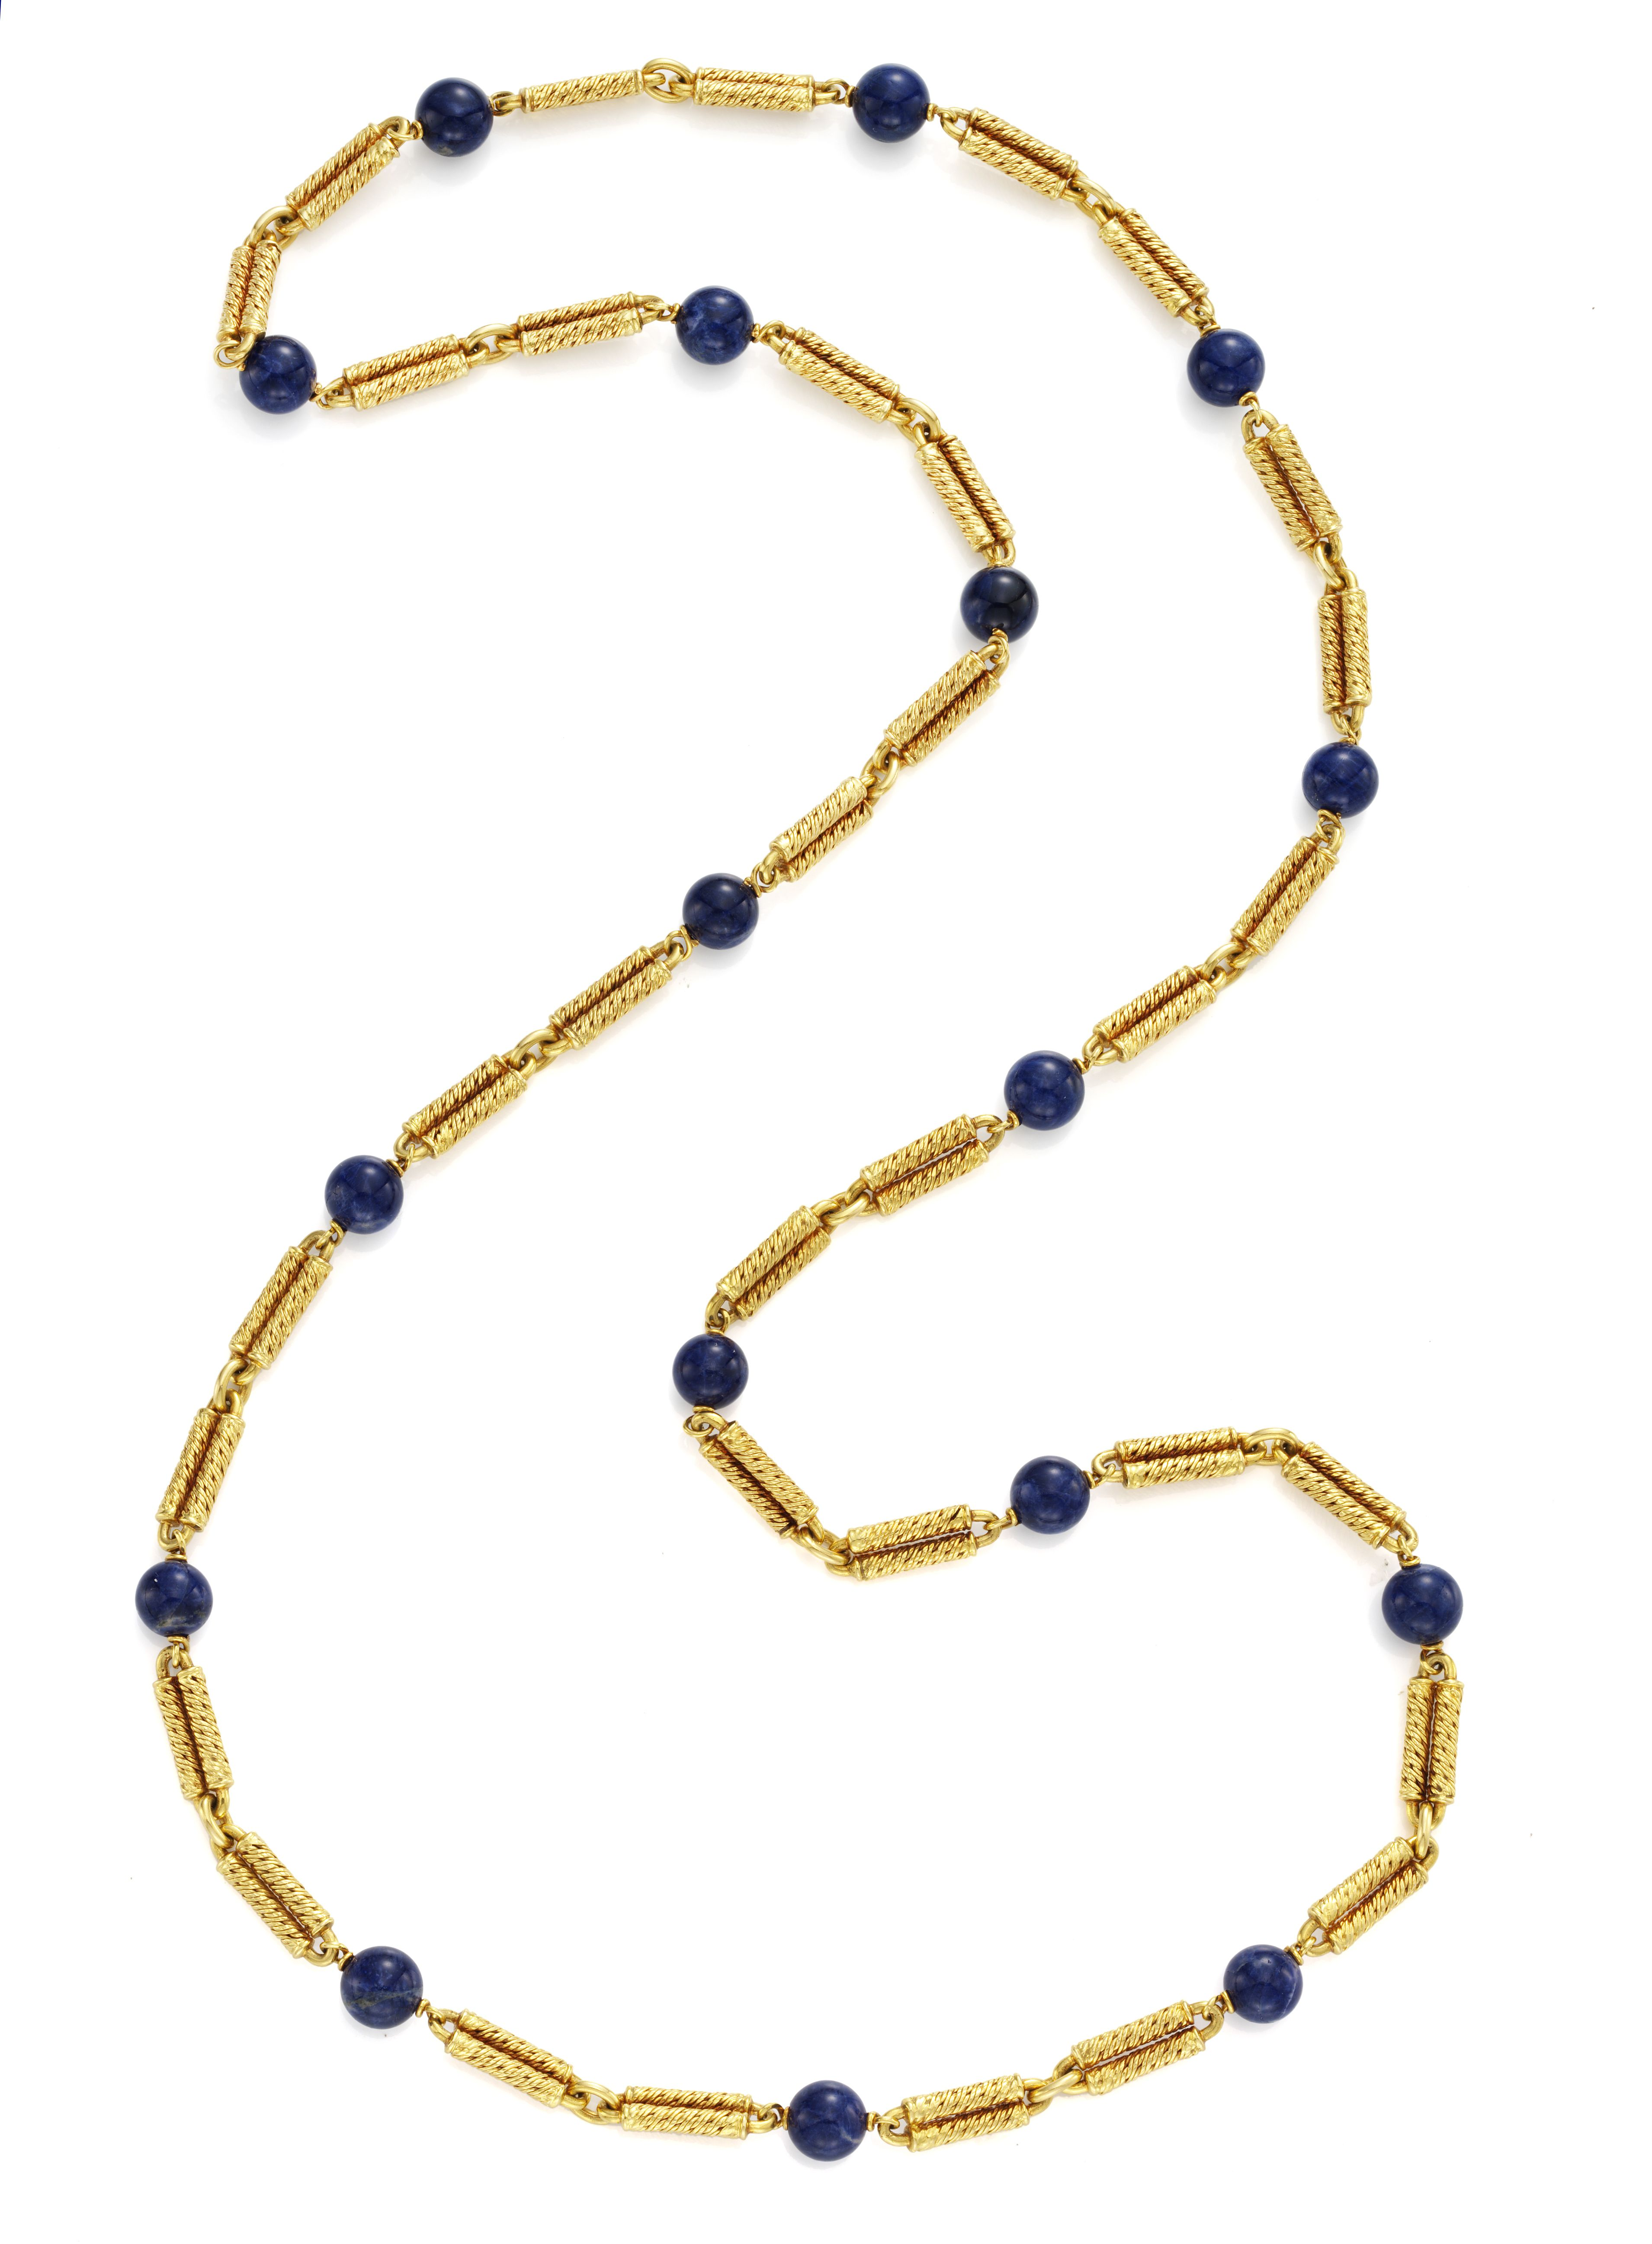 A Gold and Lapis Lazuli Necklace, by Van Cleef & Arpels  Available